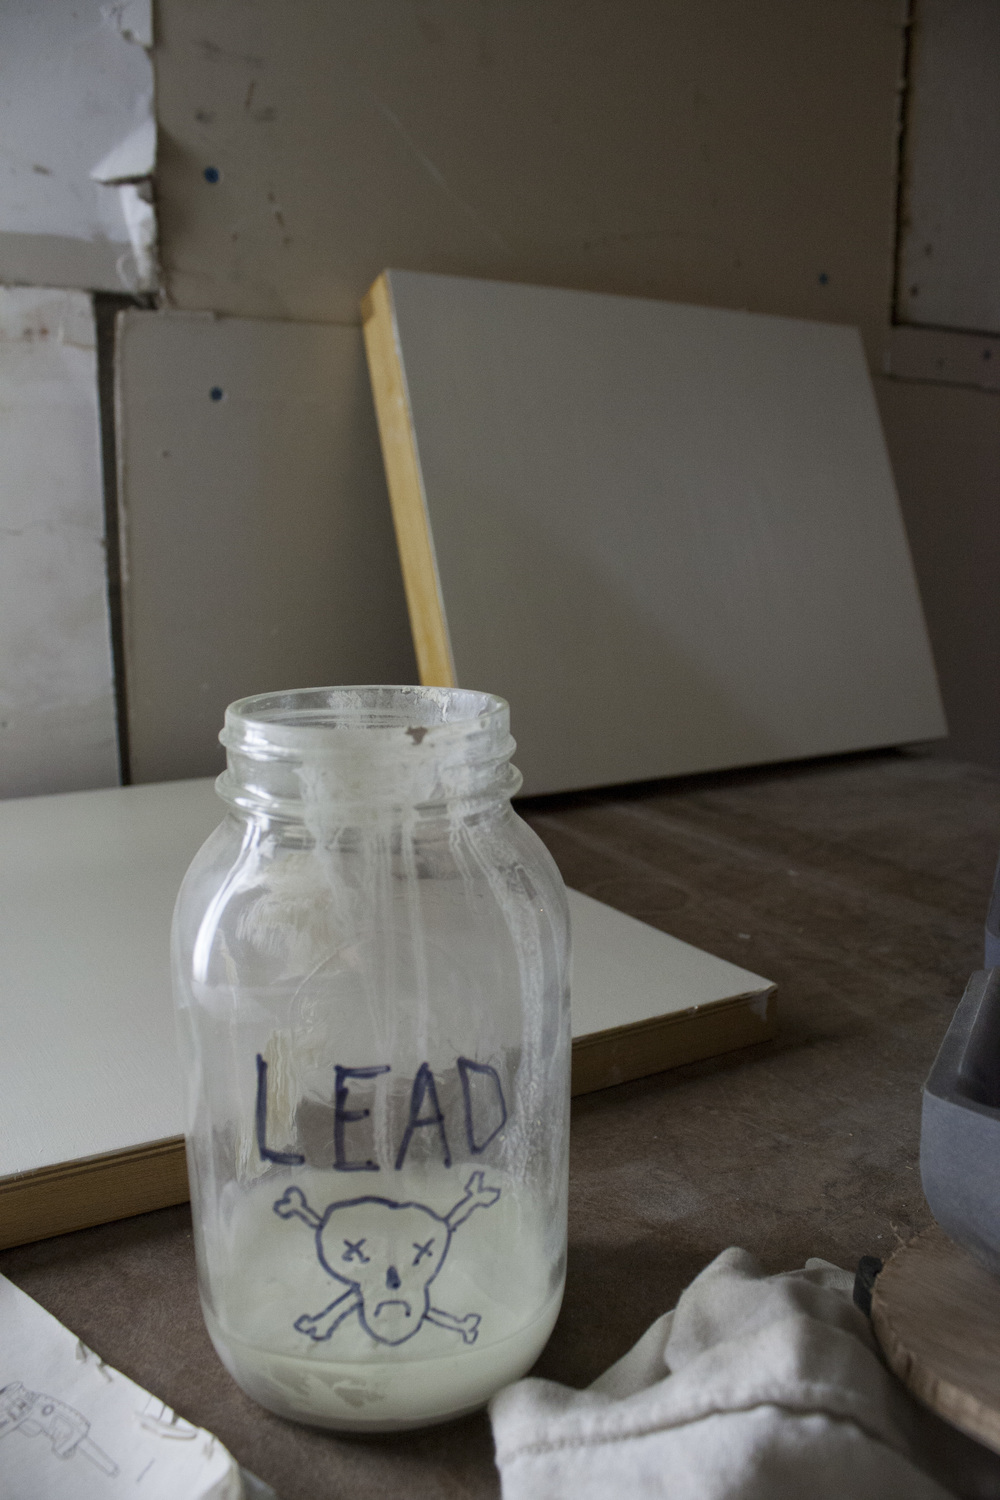 Lead priming is a traditional and long lasting method... but not entirely safe.